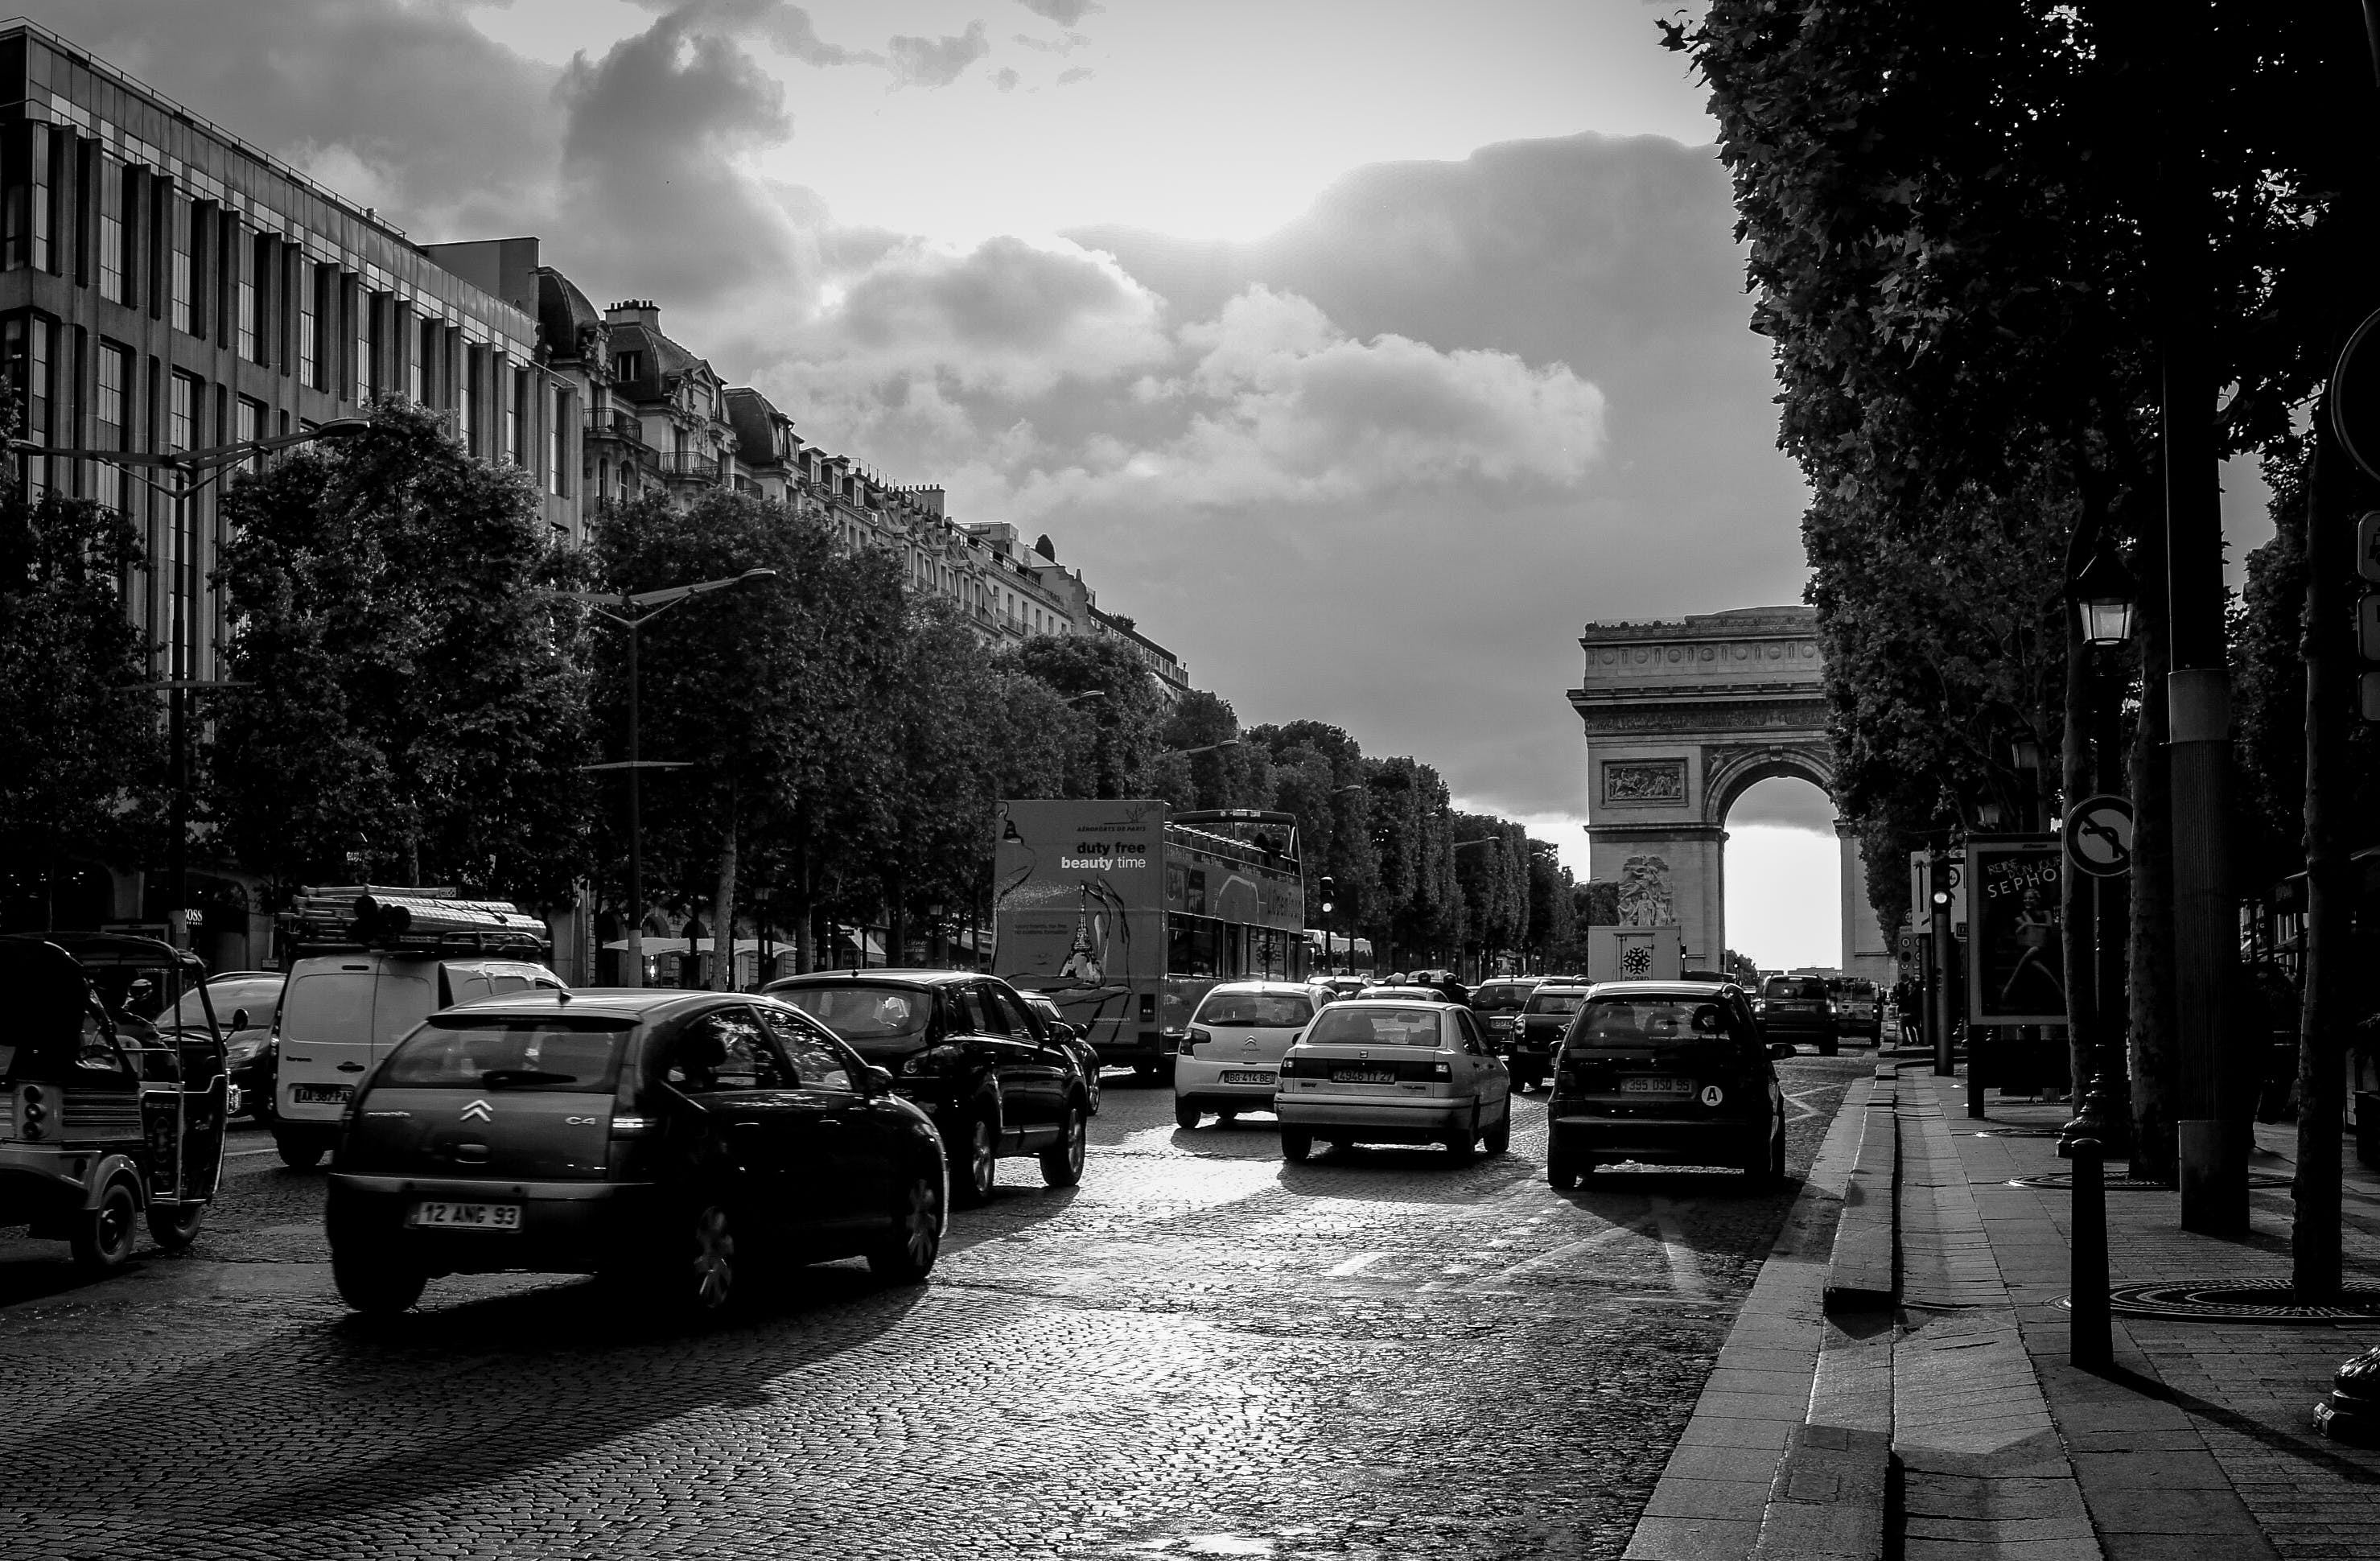 Grayscale Photo of Busy Streets With Building